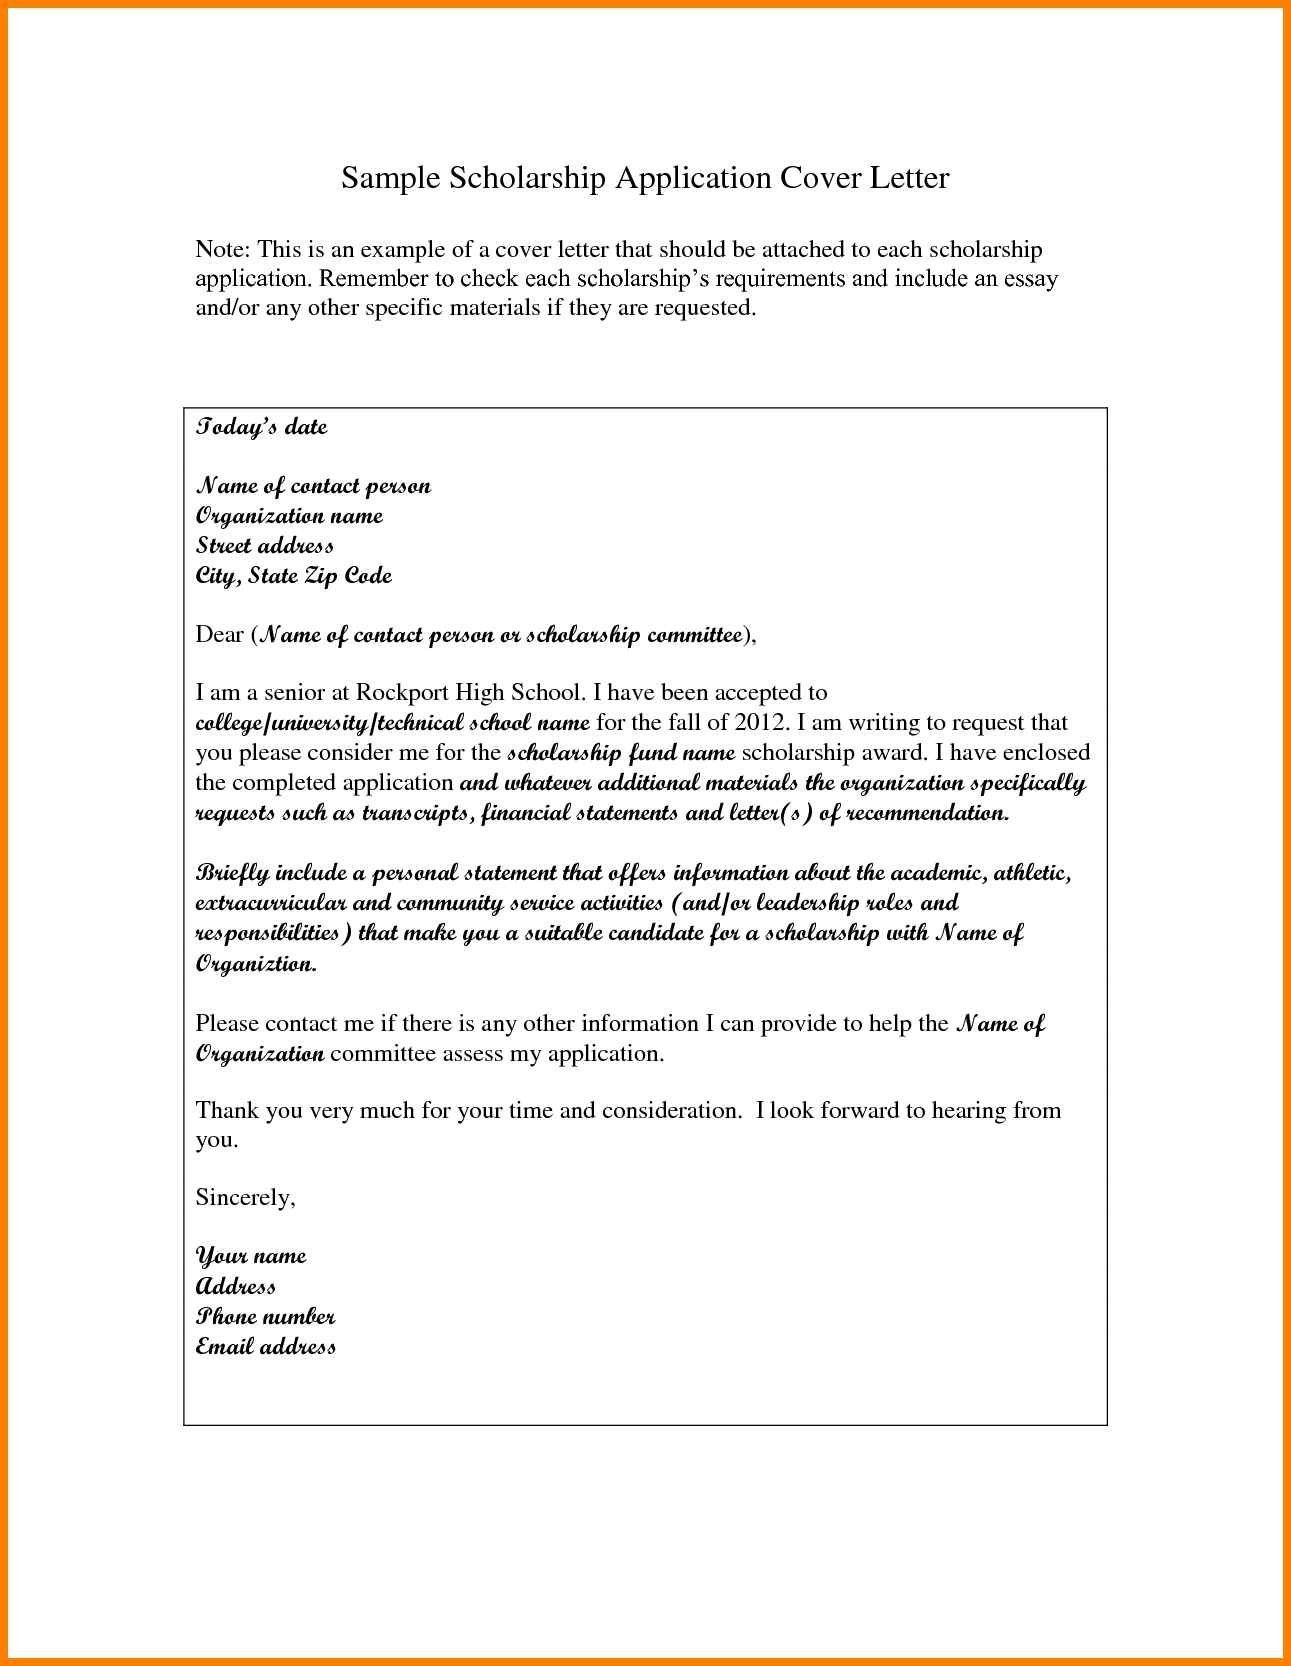 new application letter for scholarship in college cover great resume examples 2019 example cv phd customer service representative objective